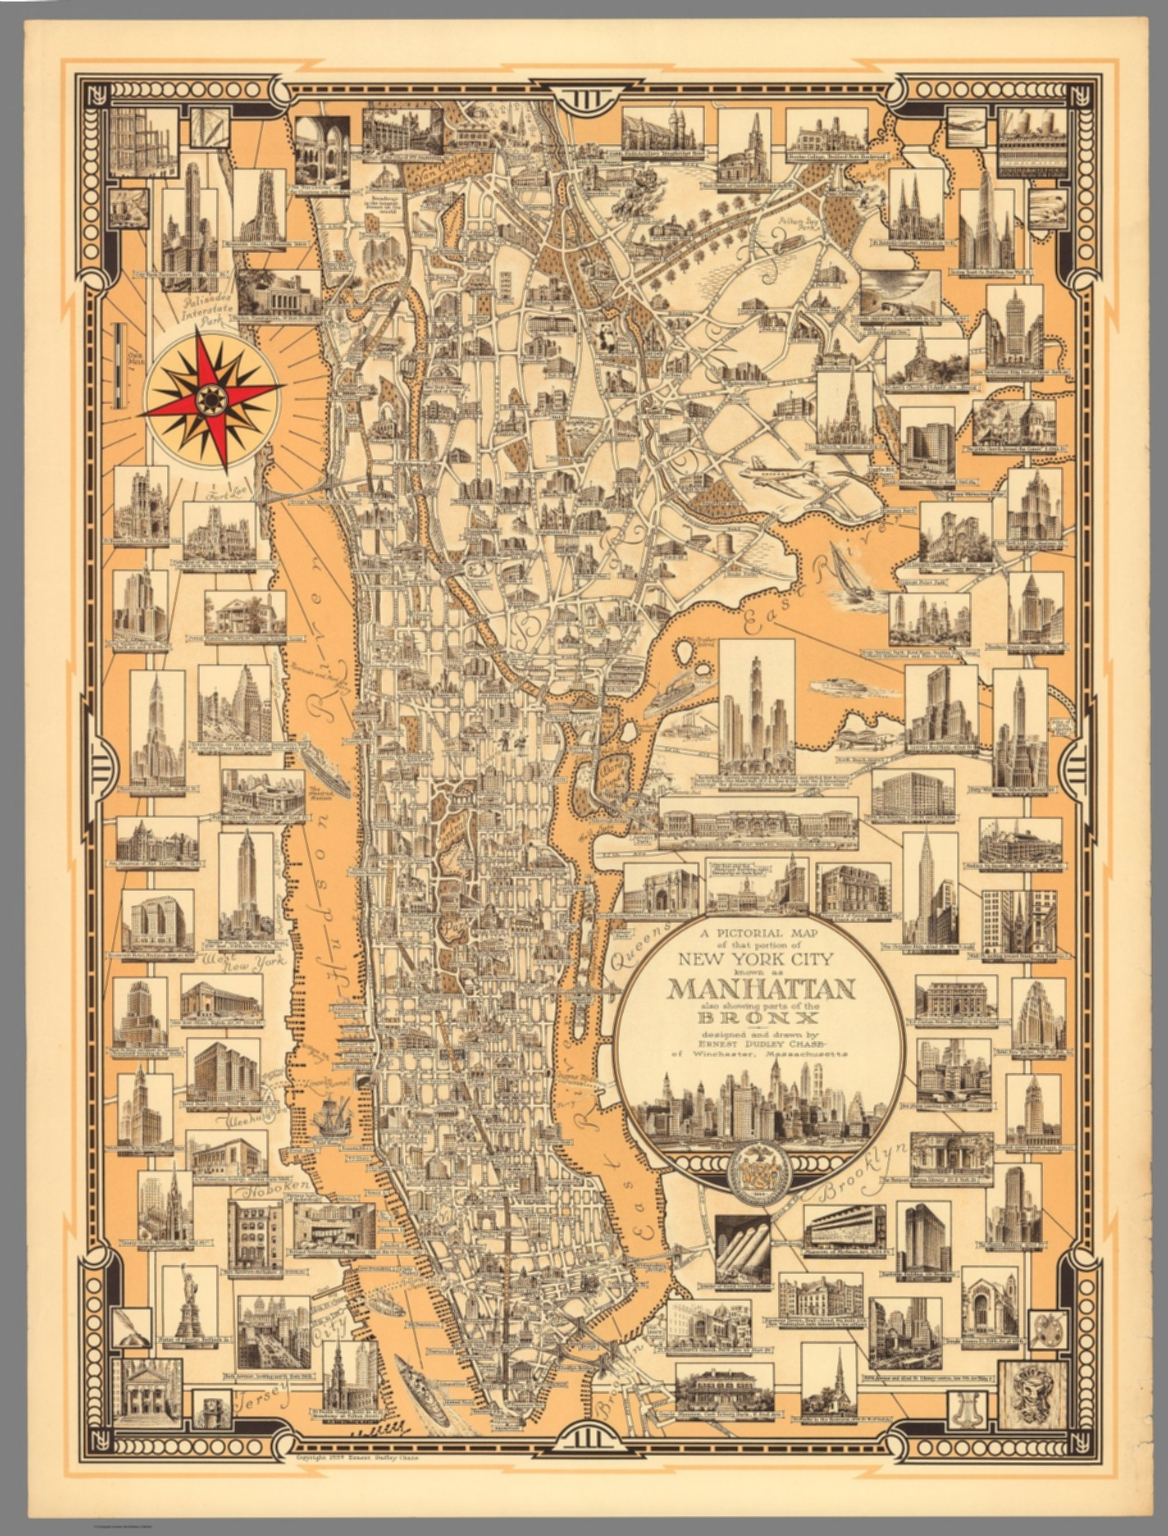 a pictorial map of that portion of new york city known as manhattan